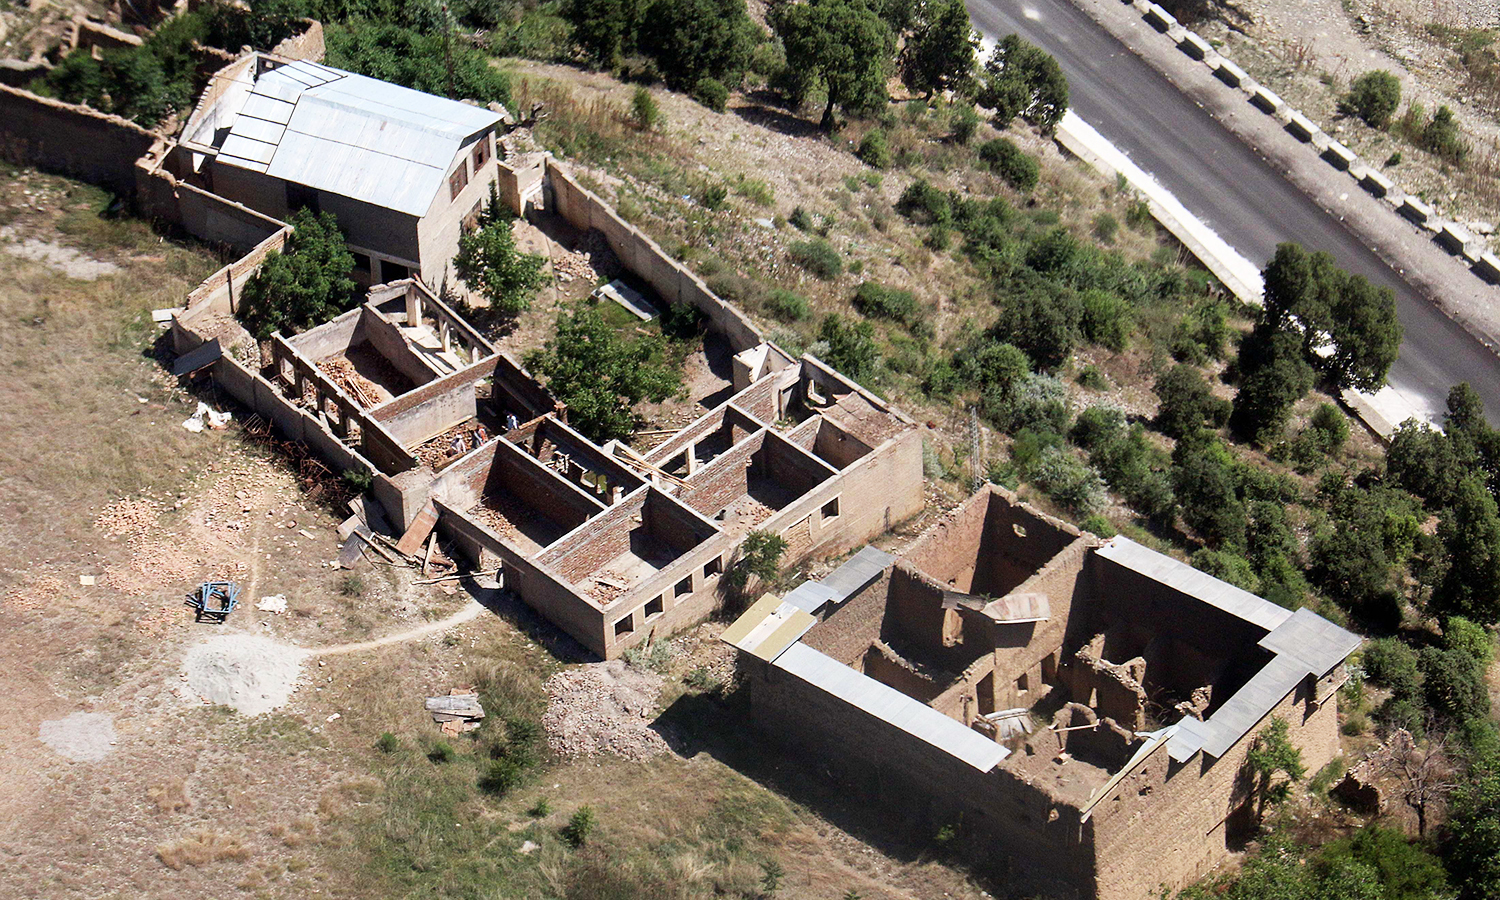 In this photograph taken from a Pakistani army helicopter on May 20, 2016, empty houses whose roofs have been removed by the army during an operation in South Waziristan.— AFP